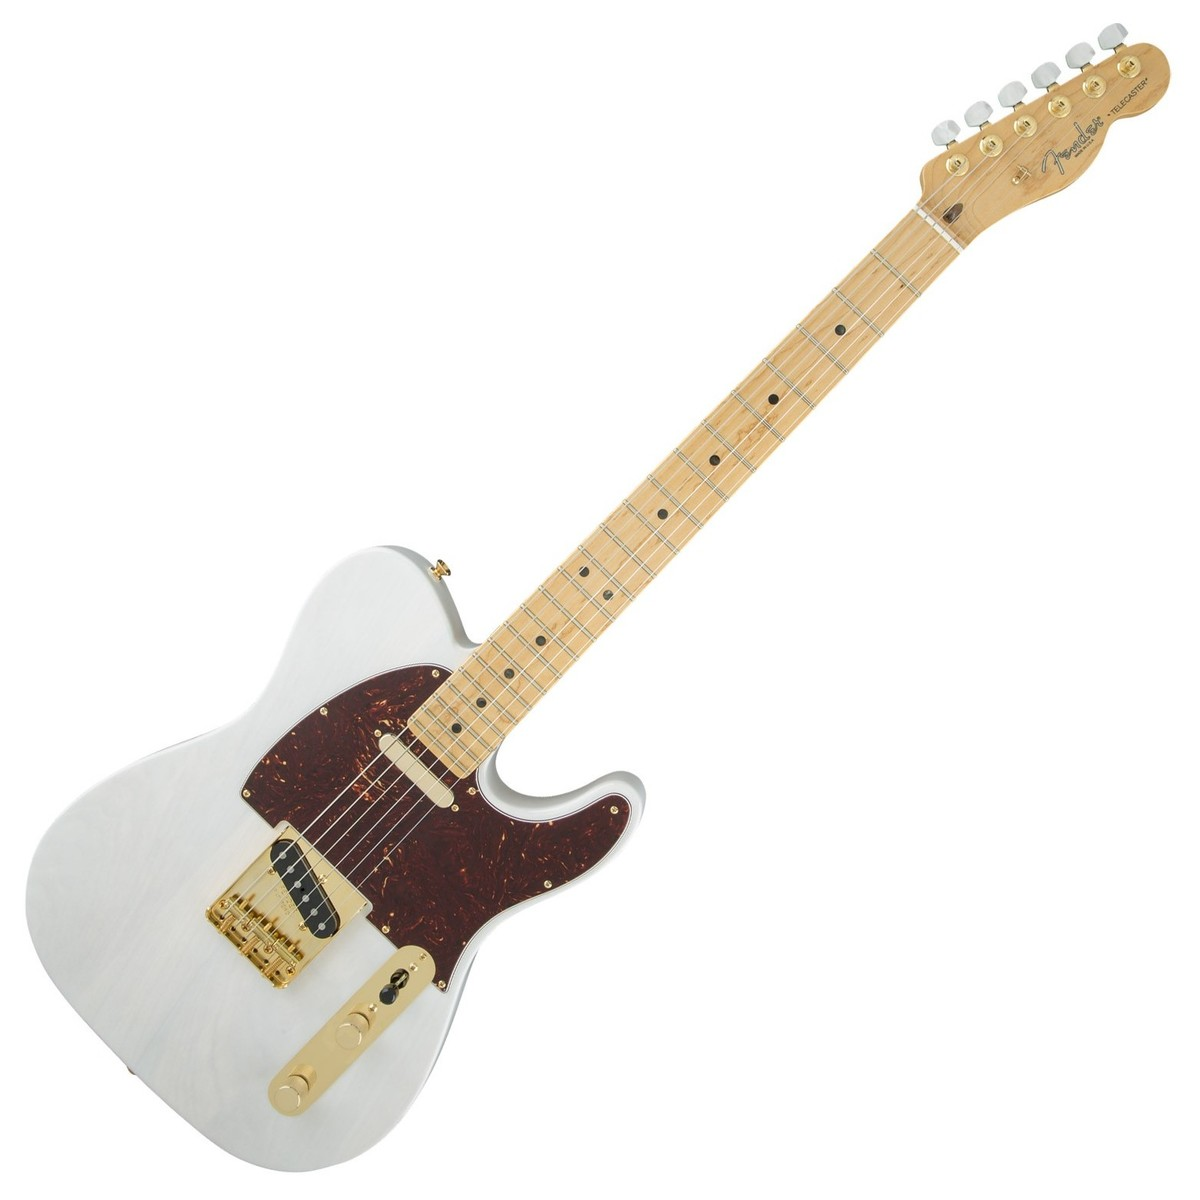 fender fsr limited edition select light ash telecaster white blonde at. Black Bedroom Furniture Sets. Home Design Ideas